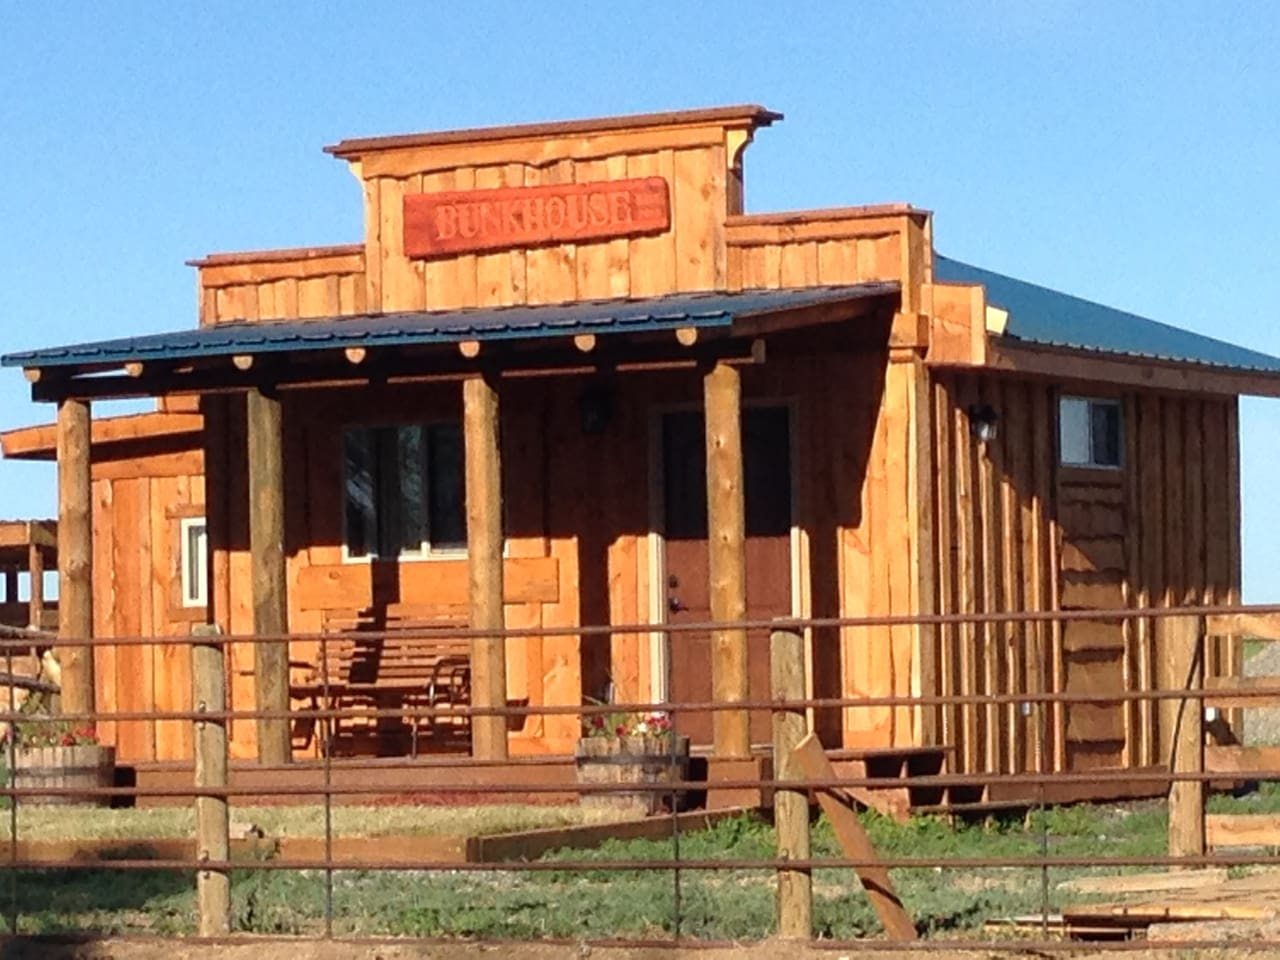 The Bunkhouse is built in the style of the old west. You will find all the comforts of home, including TV, WiFi, DVD player , A/C and views beyond description. Your own cabin with a complete private bathroom. No neighbors except the horses!